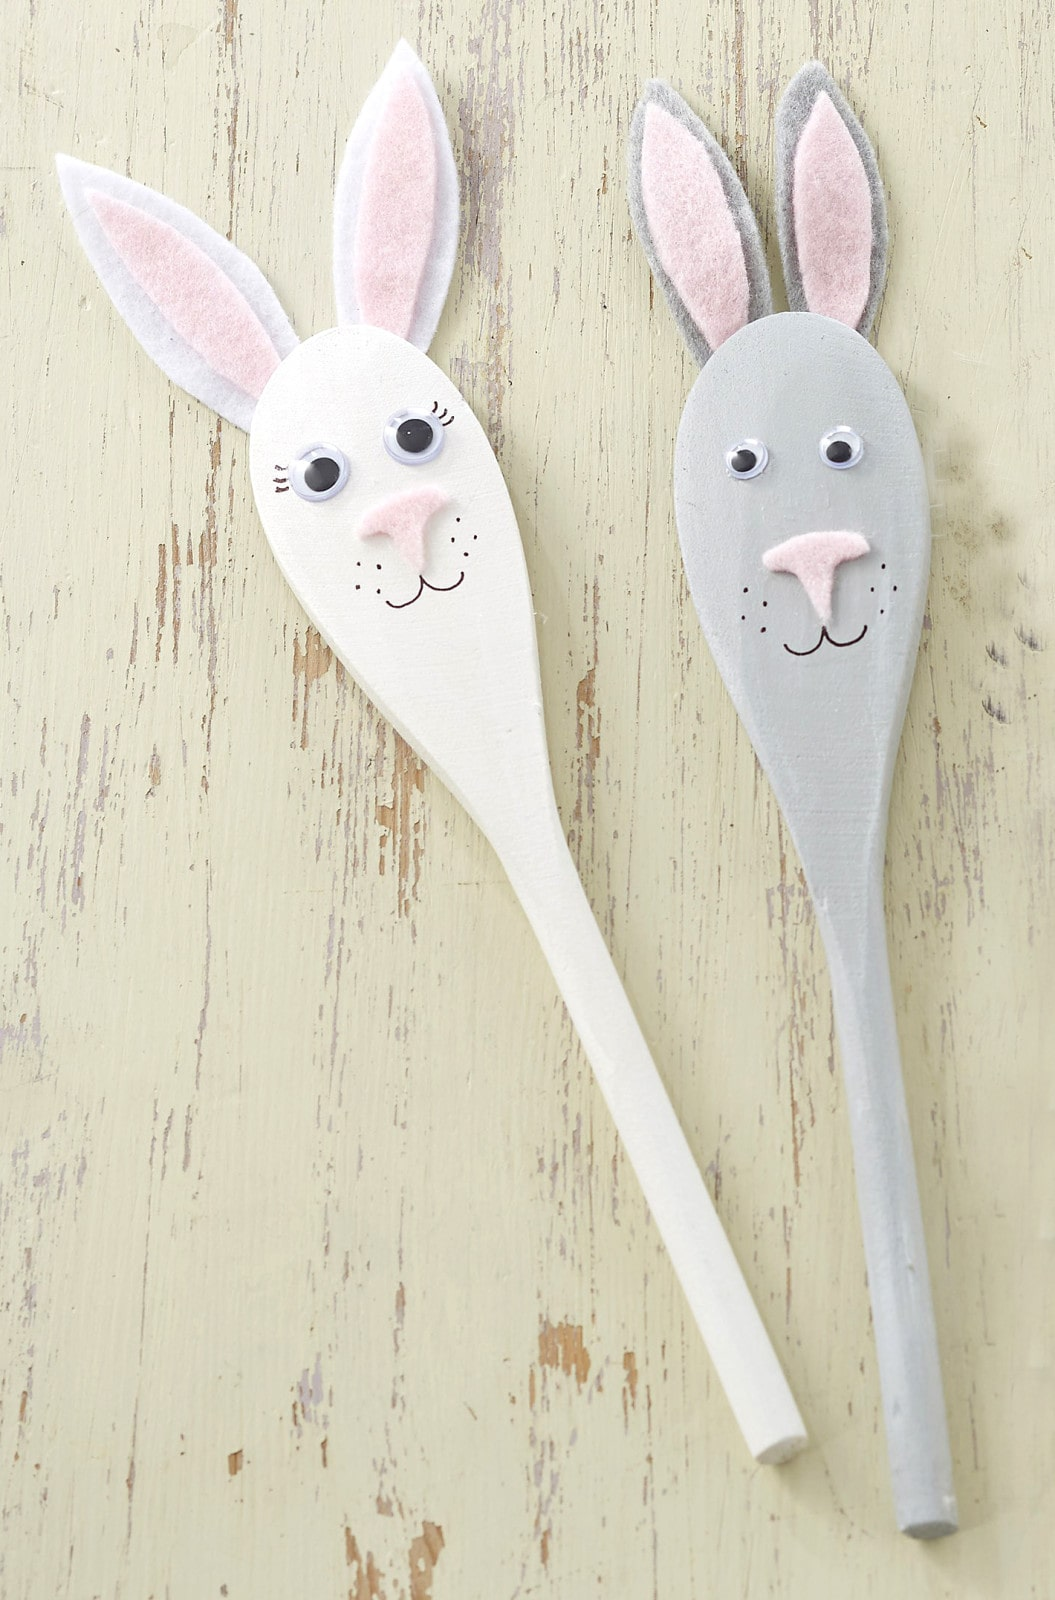 wooden spoon princess craft 25 bunny craft ideas and diy projects loving 5784